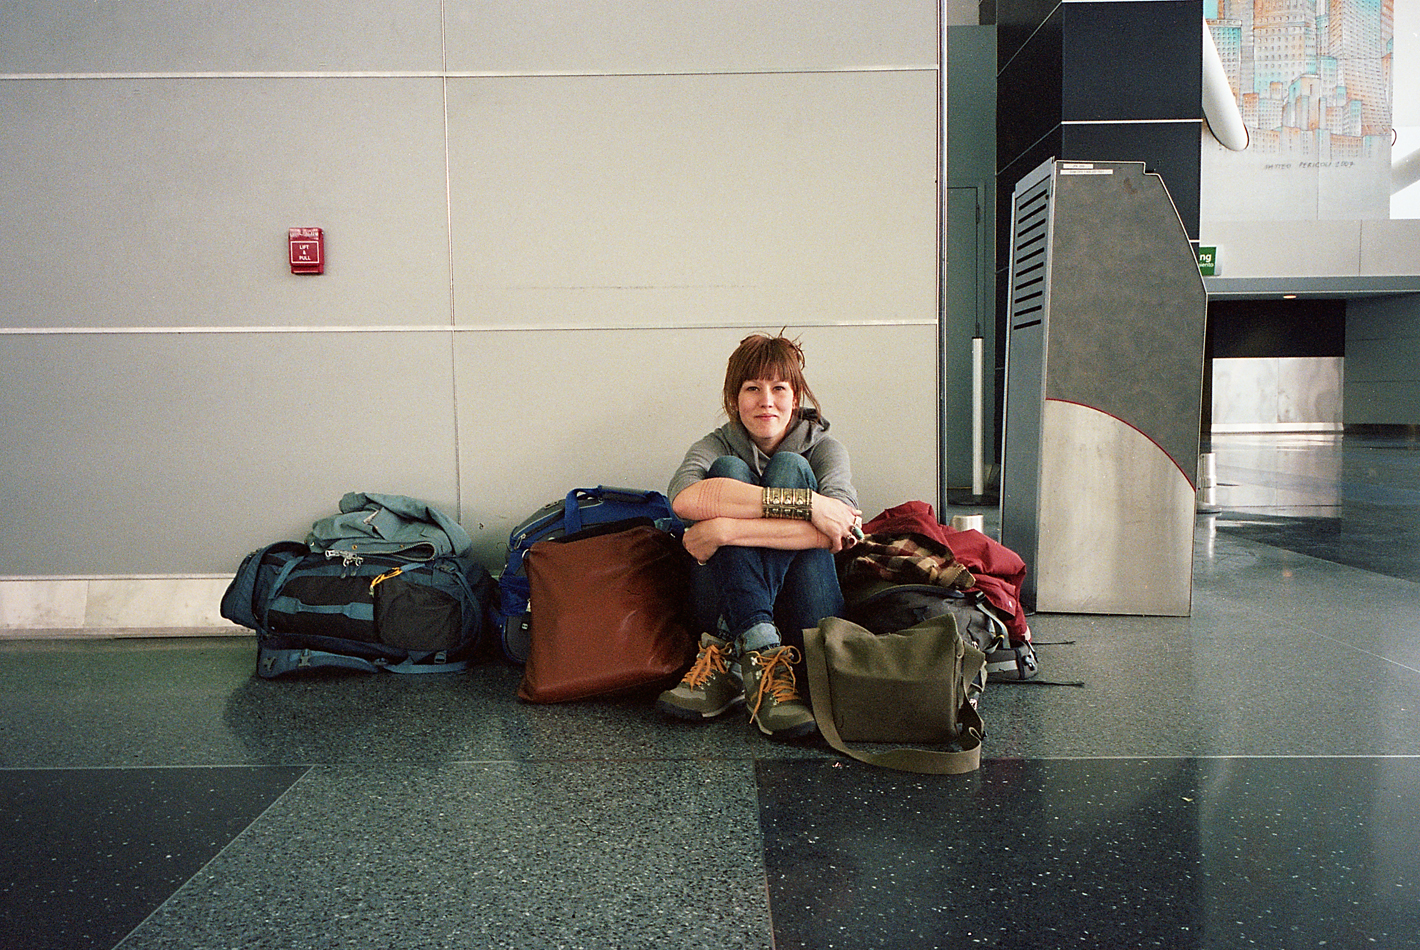 Me & the gear. Travel bags were not what they are now and I certainly didn't need to pack a tent in hindsight.